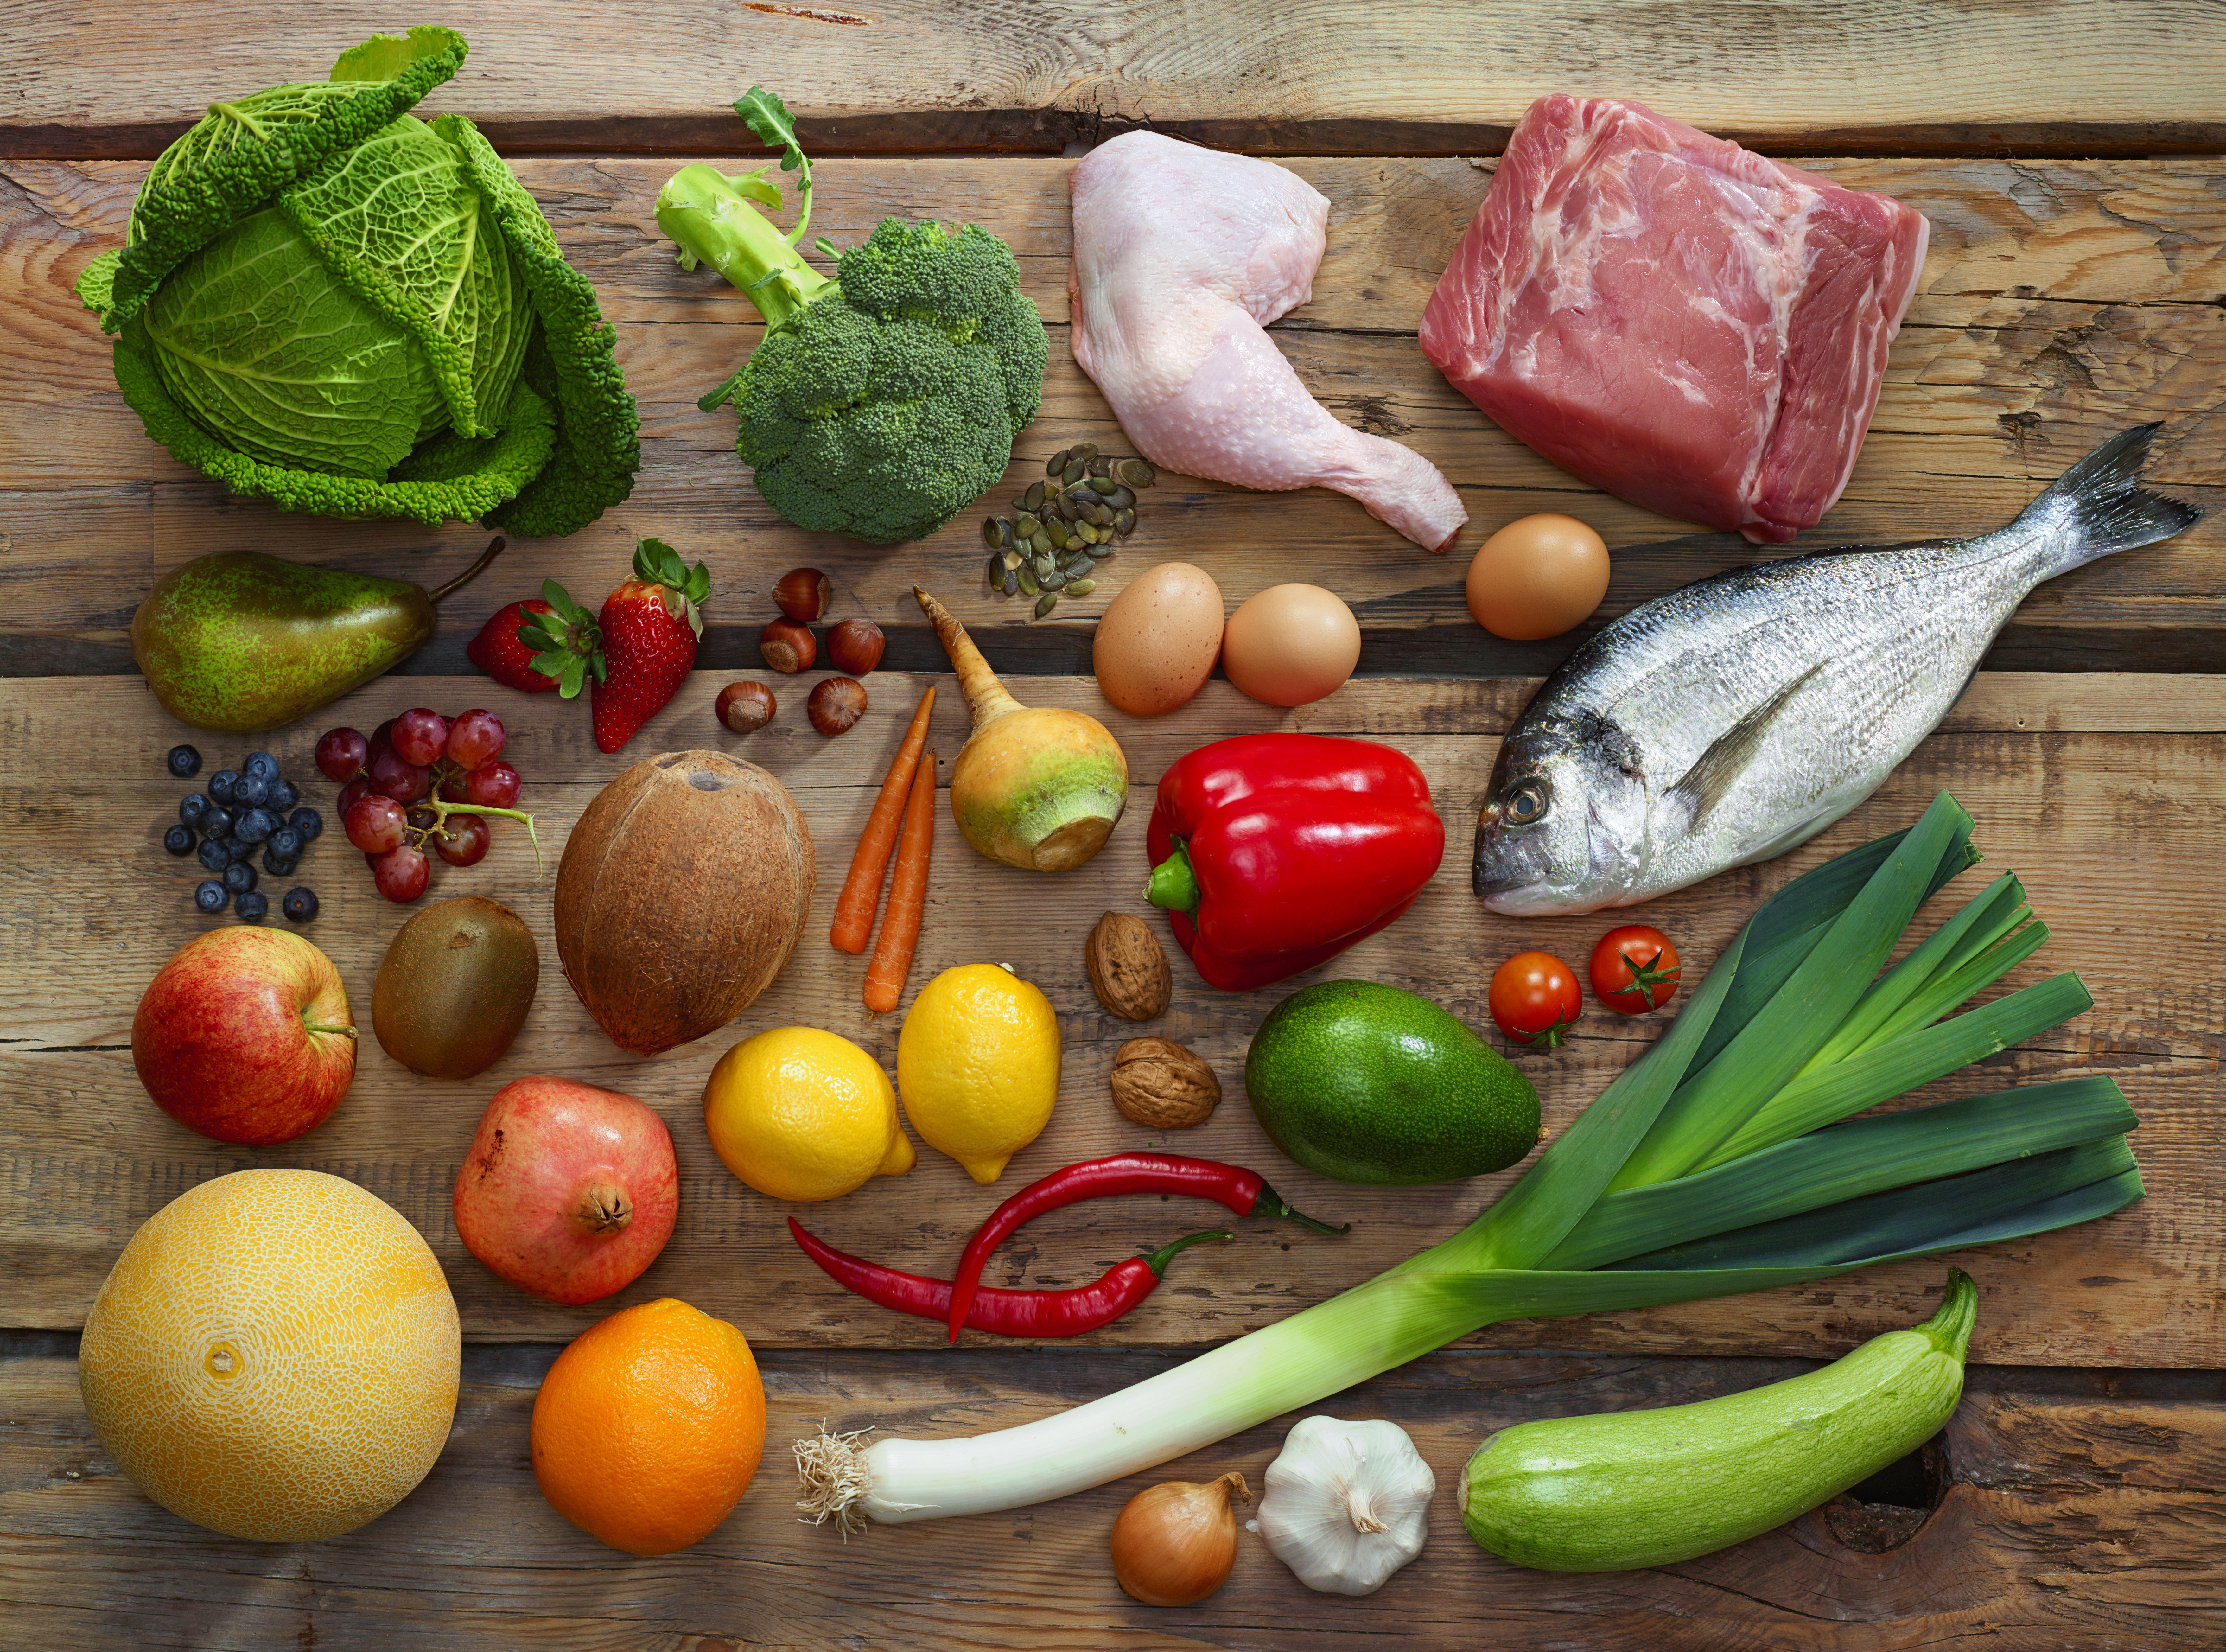 Eating Specific Proteins, Carbs May Be More Effective For Weight Management  Than Counting Calories